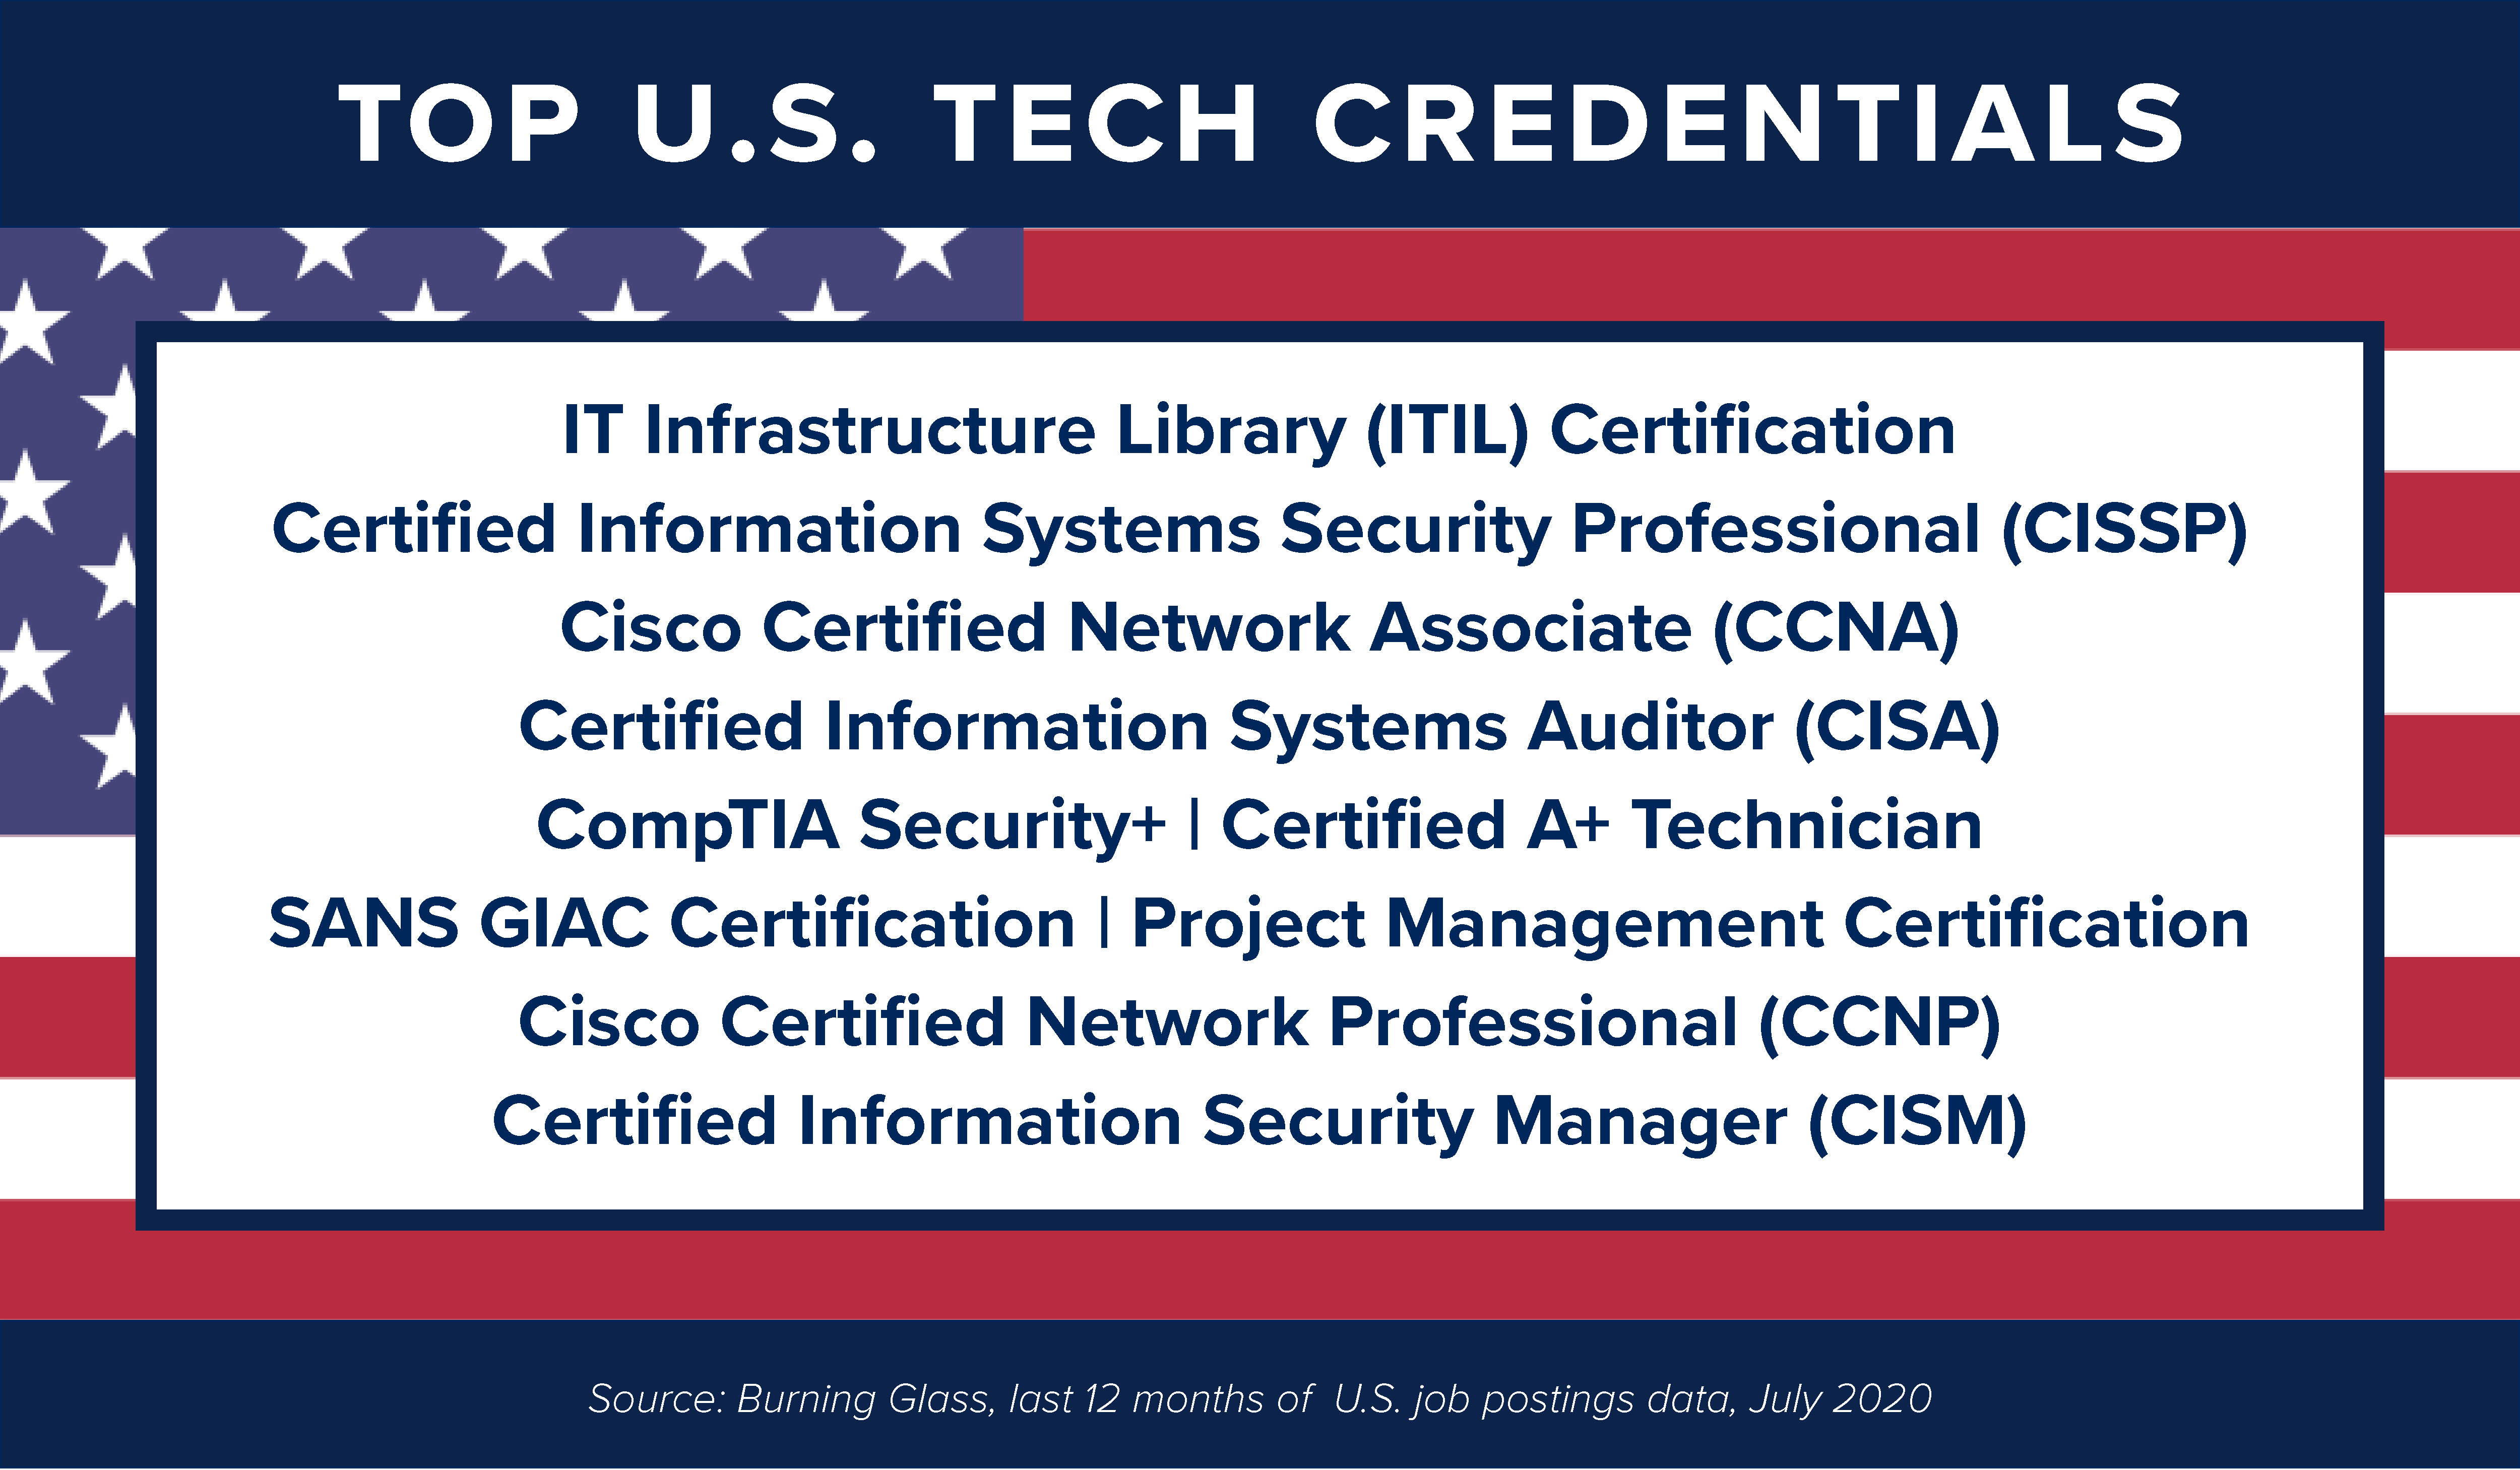 IT Infrastructure Library (ITIL) Certification, Certified Information Systems Security Professional (CISSP), Cisco Certified Network Associate (CCNA), Certified Information Systems Auditor (CISA), CompTIA Security+   Certified A+ Technician, SANS GIAC Certification, Project Management Certification, Cisco Certified Network Professional (CCNP), and Certified Information Security Manager (CISM)